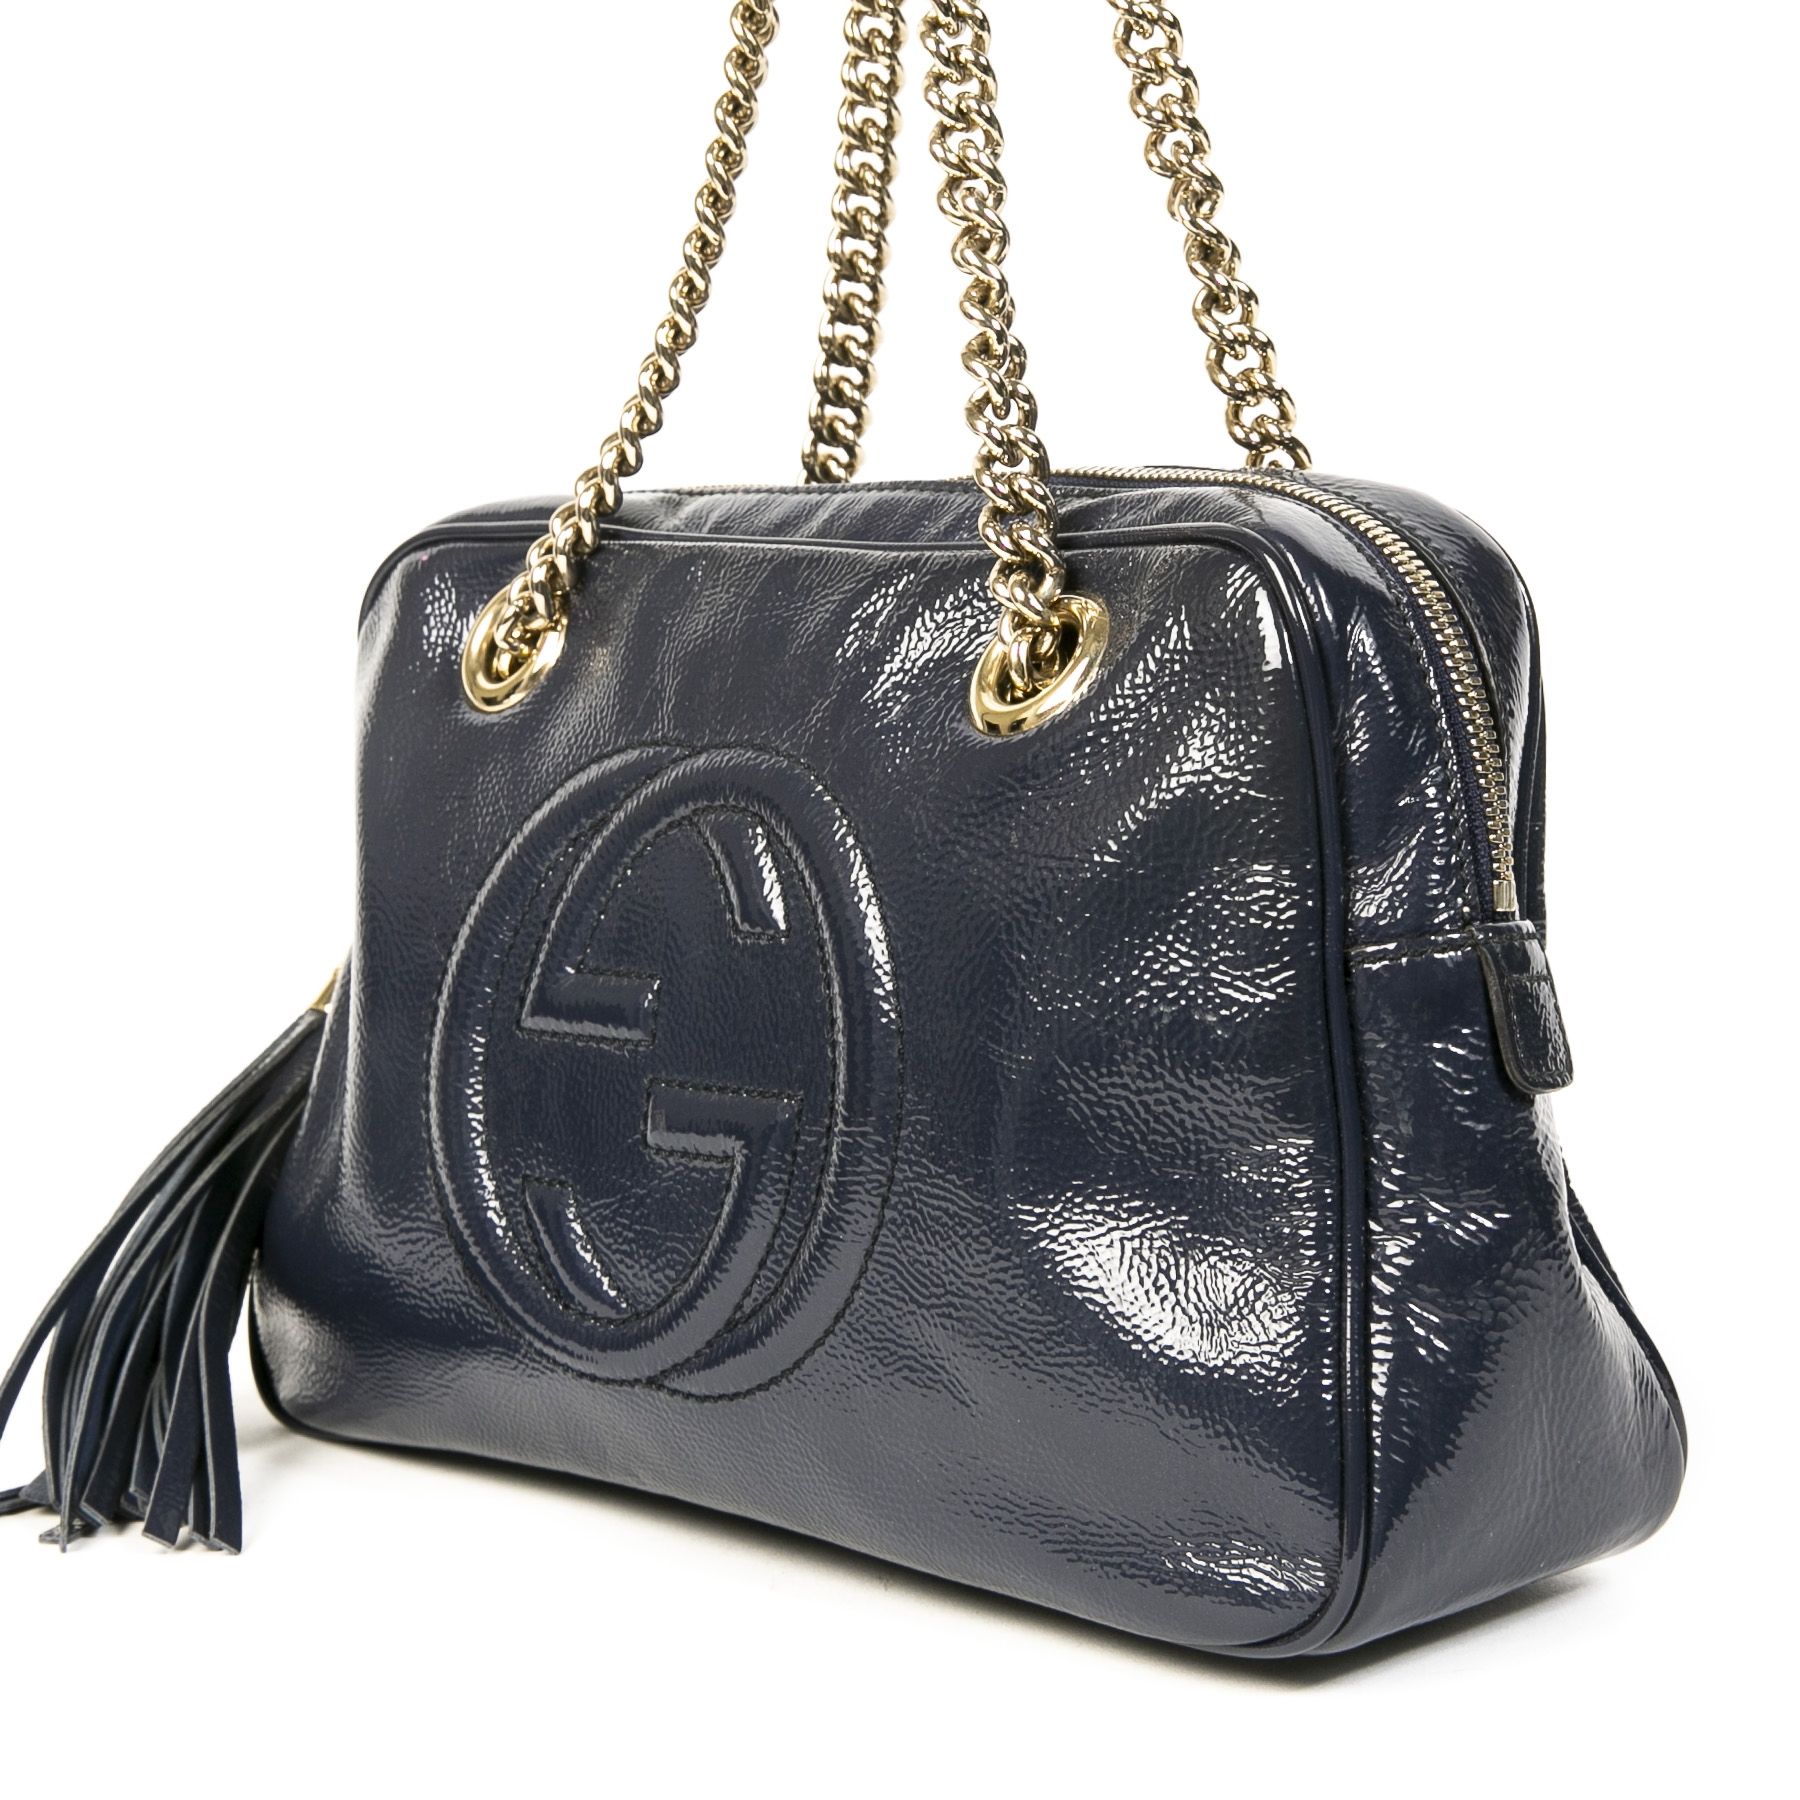 Gucci Small Soho Patent Leather Bag